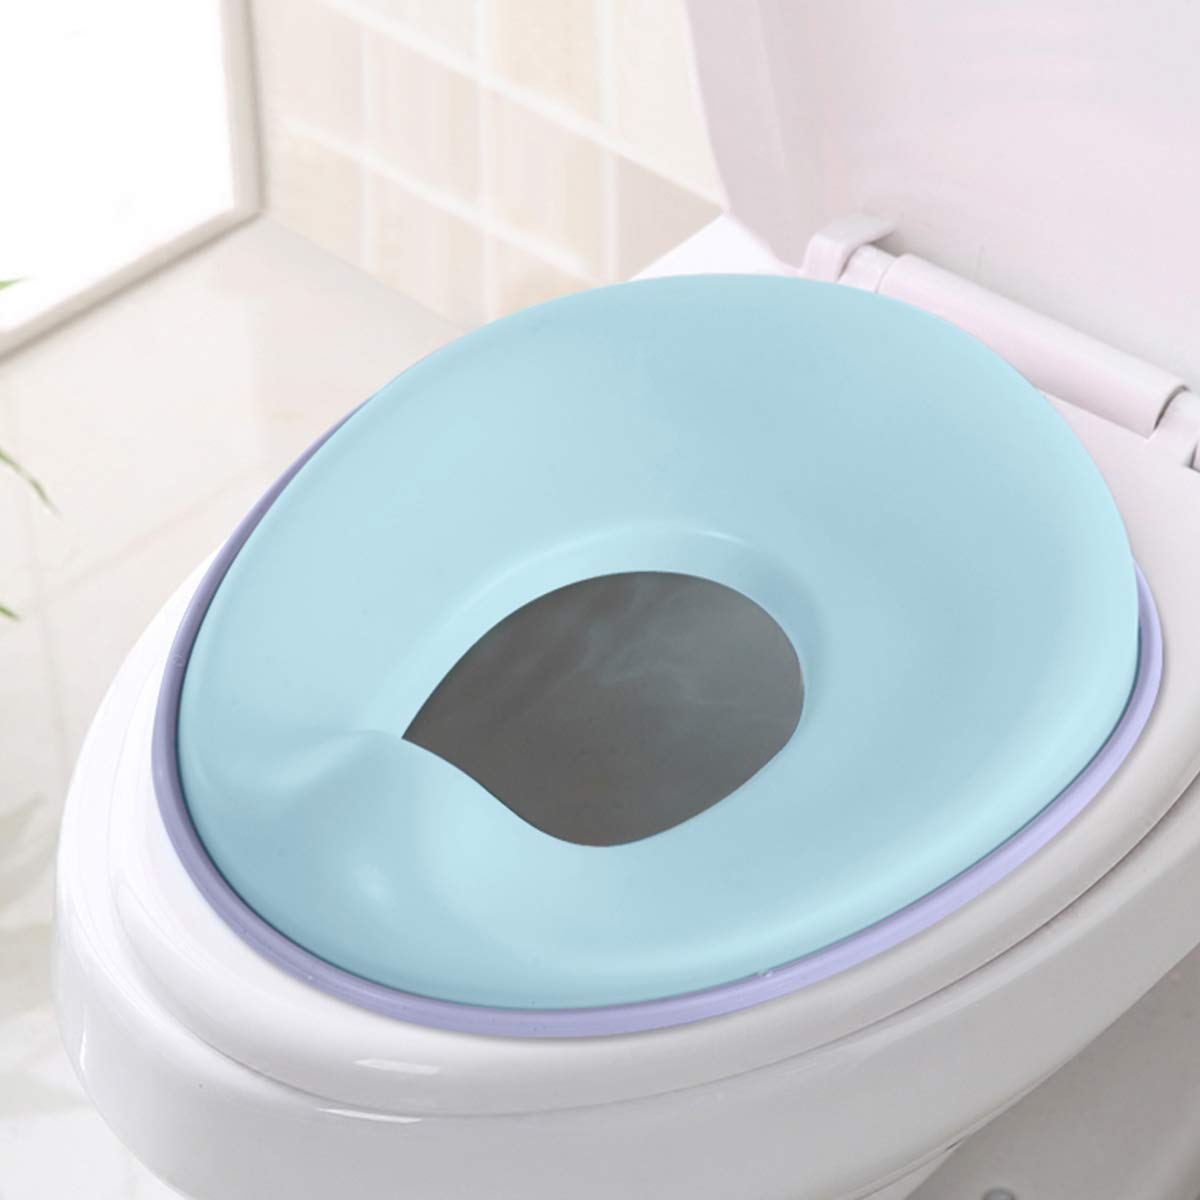 Potty Training Seat for Boys and Girls, Fits Round & Oval Toilets, Non-Slip with Splash Guard, Includes Free Storage Hook(Blue) Pandateck